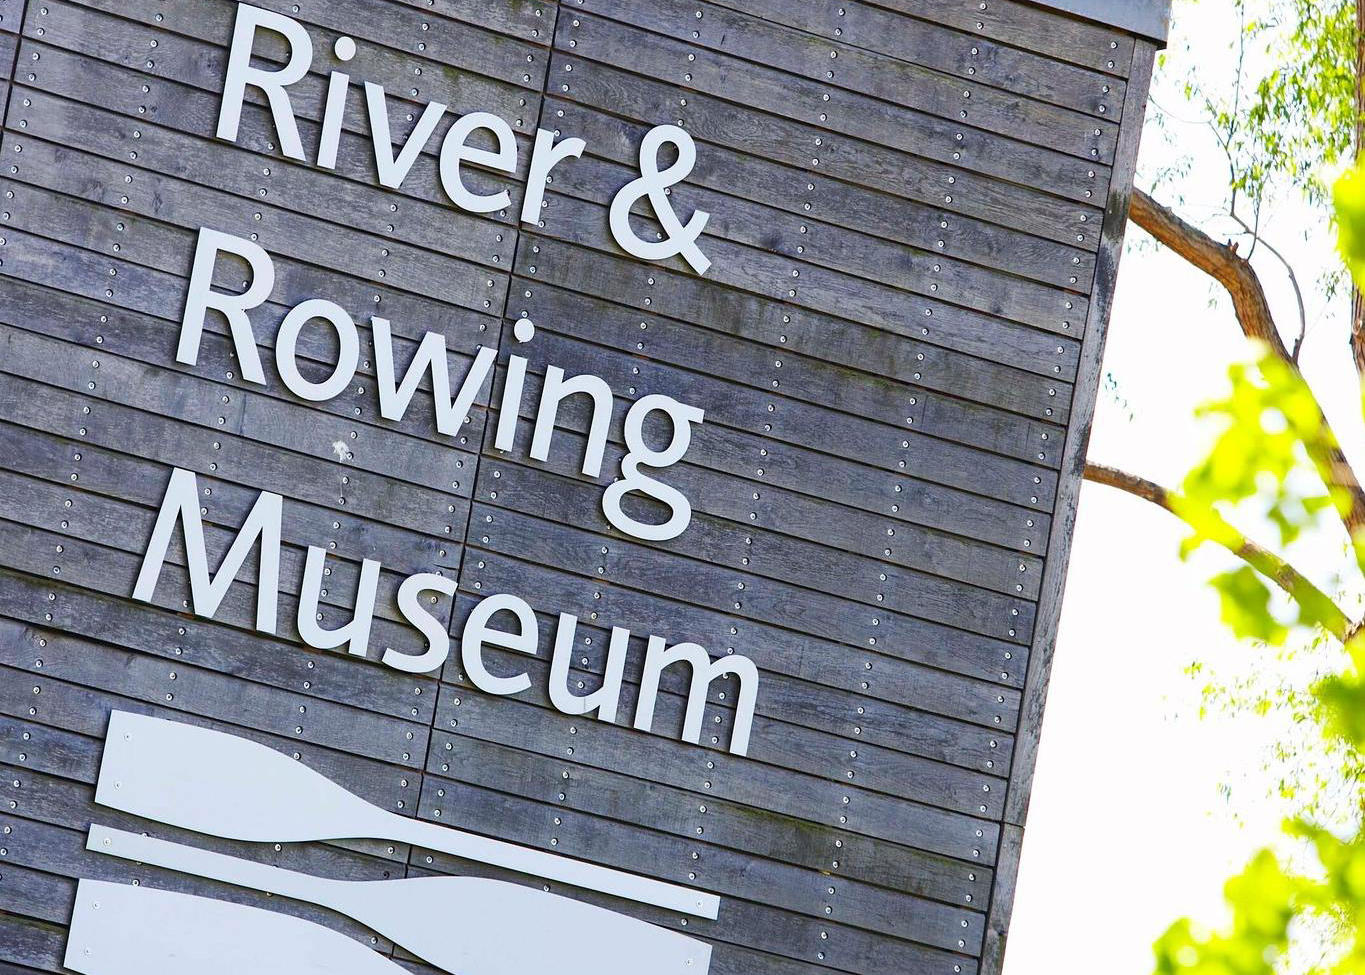 River & Rowing Museum, Oxfordshire. Staycation Inspiration by Malvern Garden Building